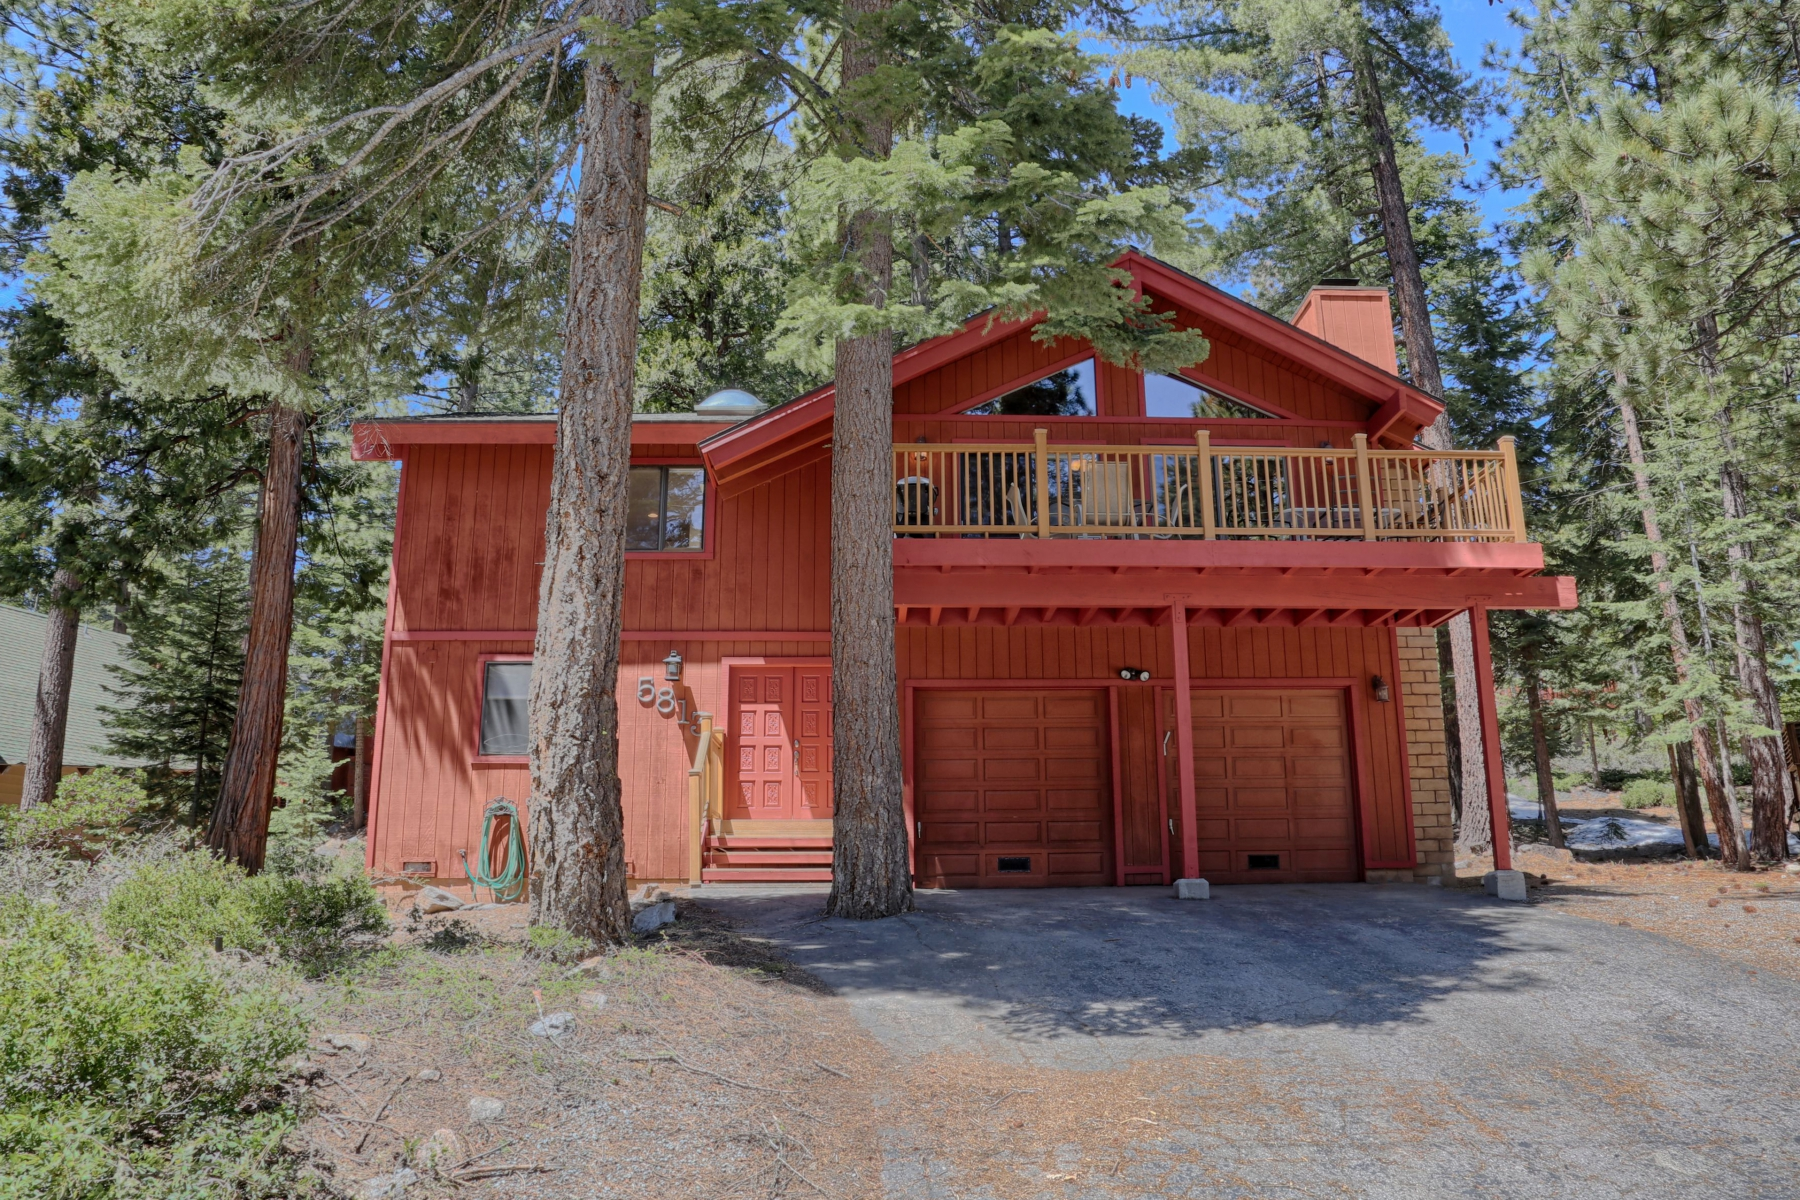 Single Family Home for Sale at 5813 Dodowah Rd, Carnelian Bay, CA 5813 Dodowah Rd. Carnelian Bay, California 96140 United States